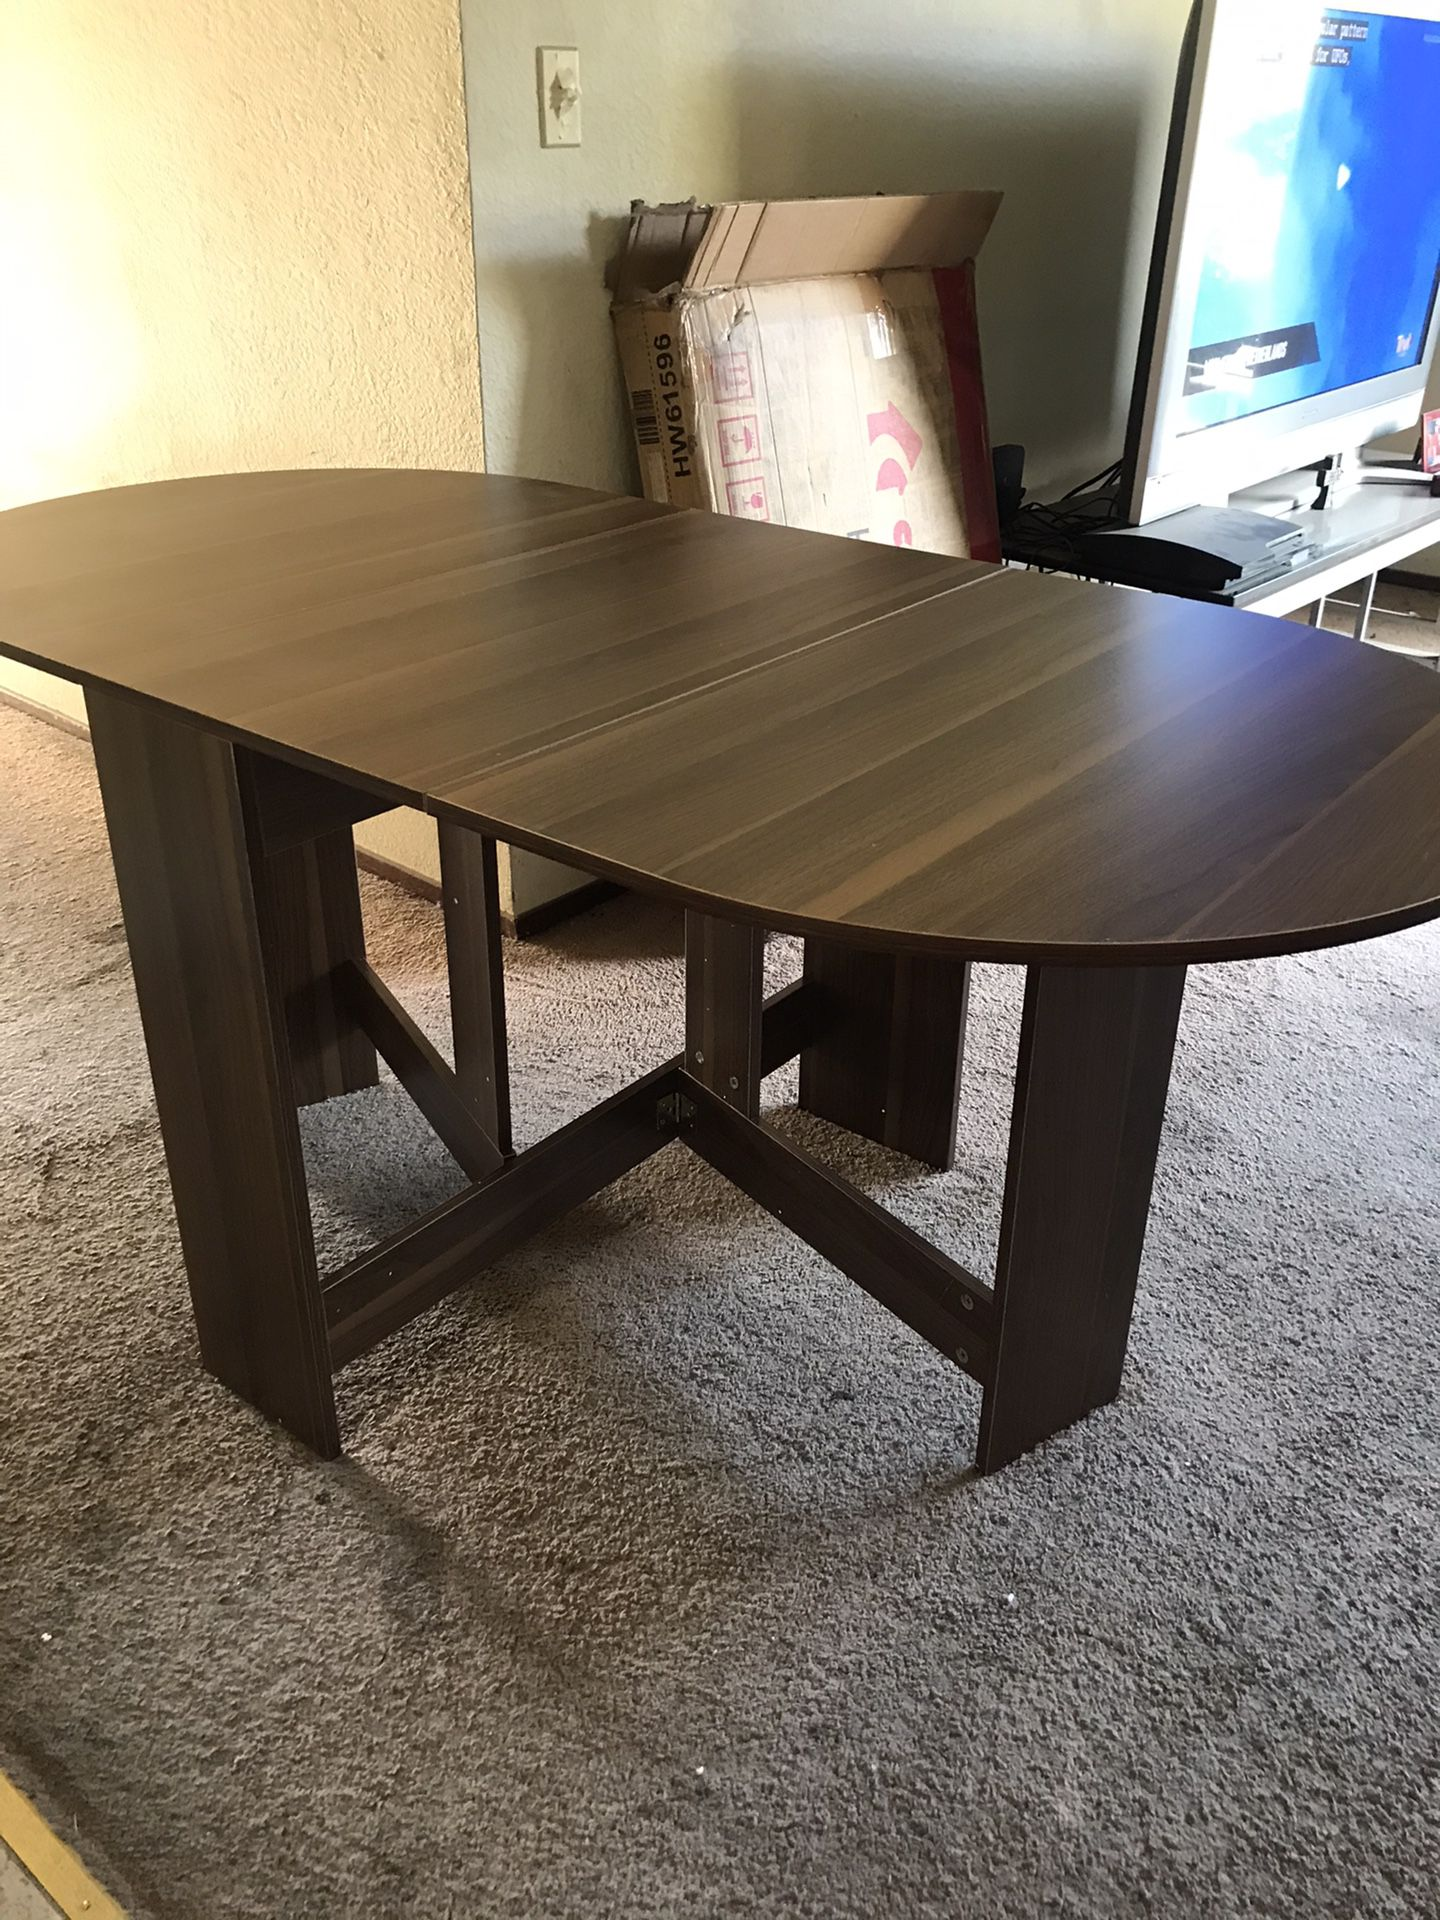 New Table